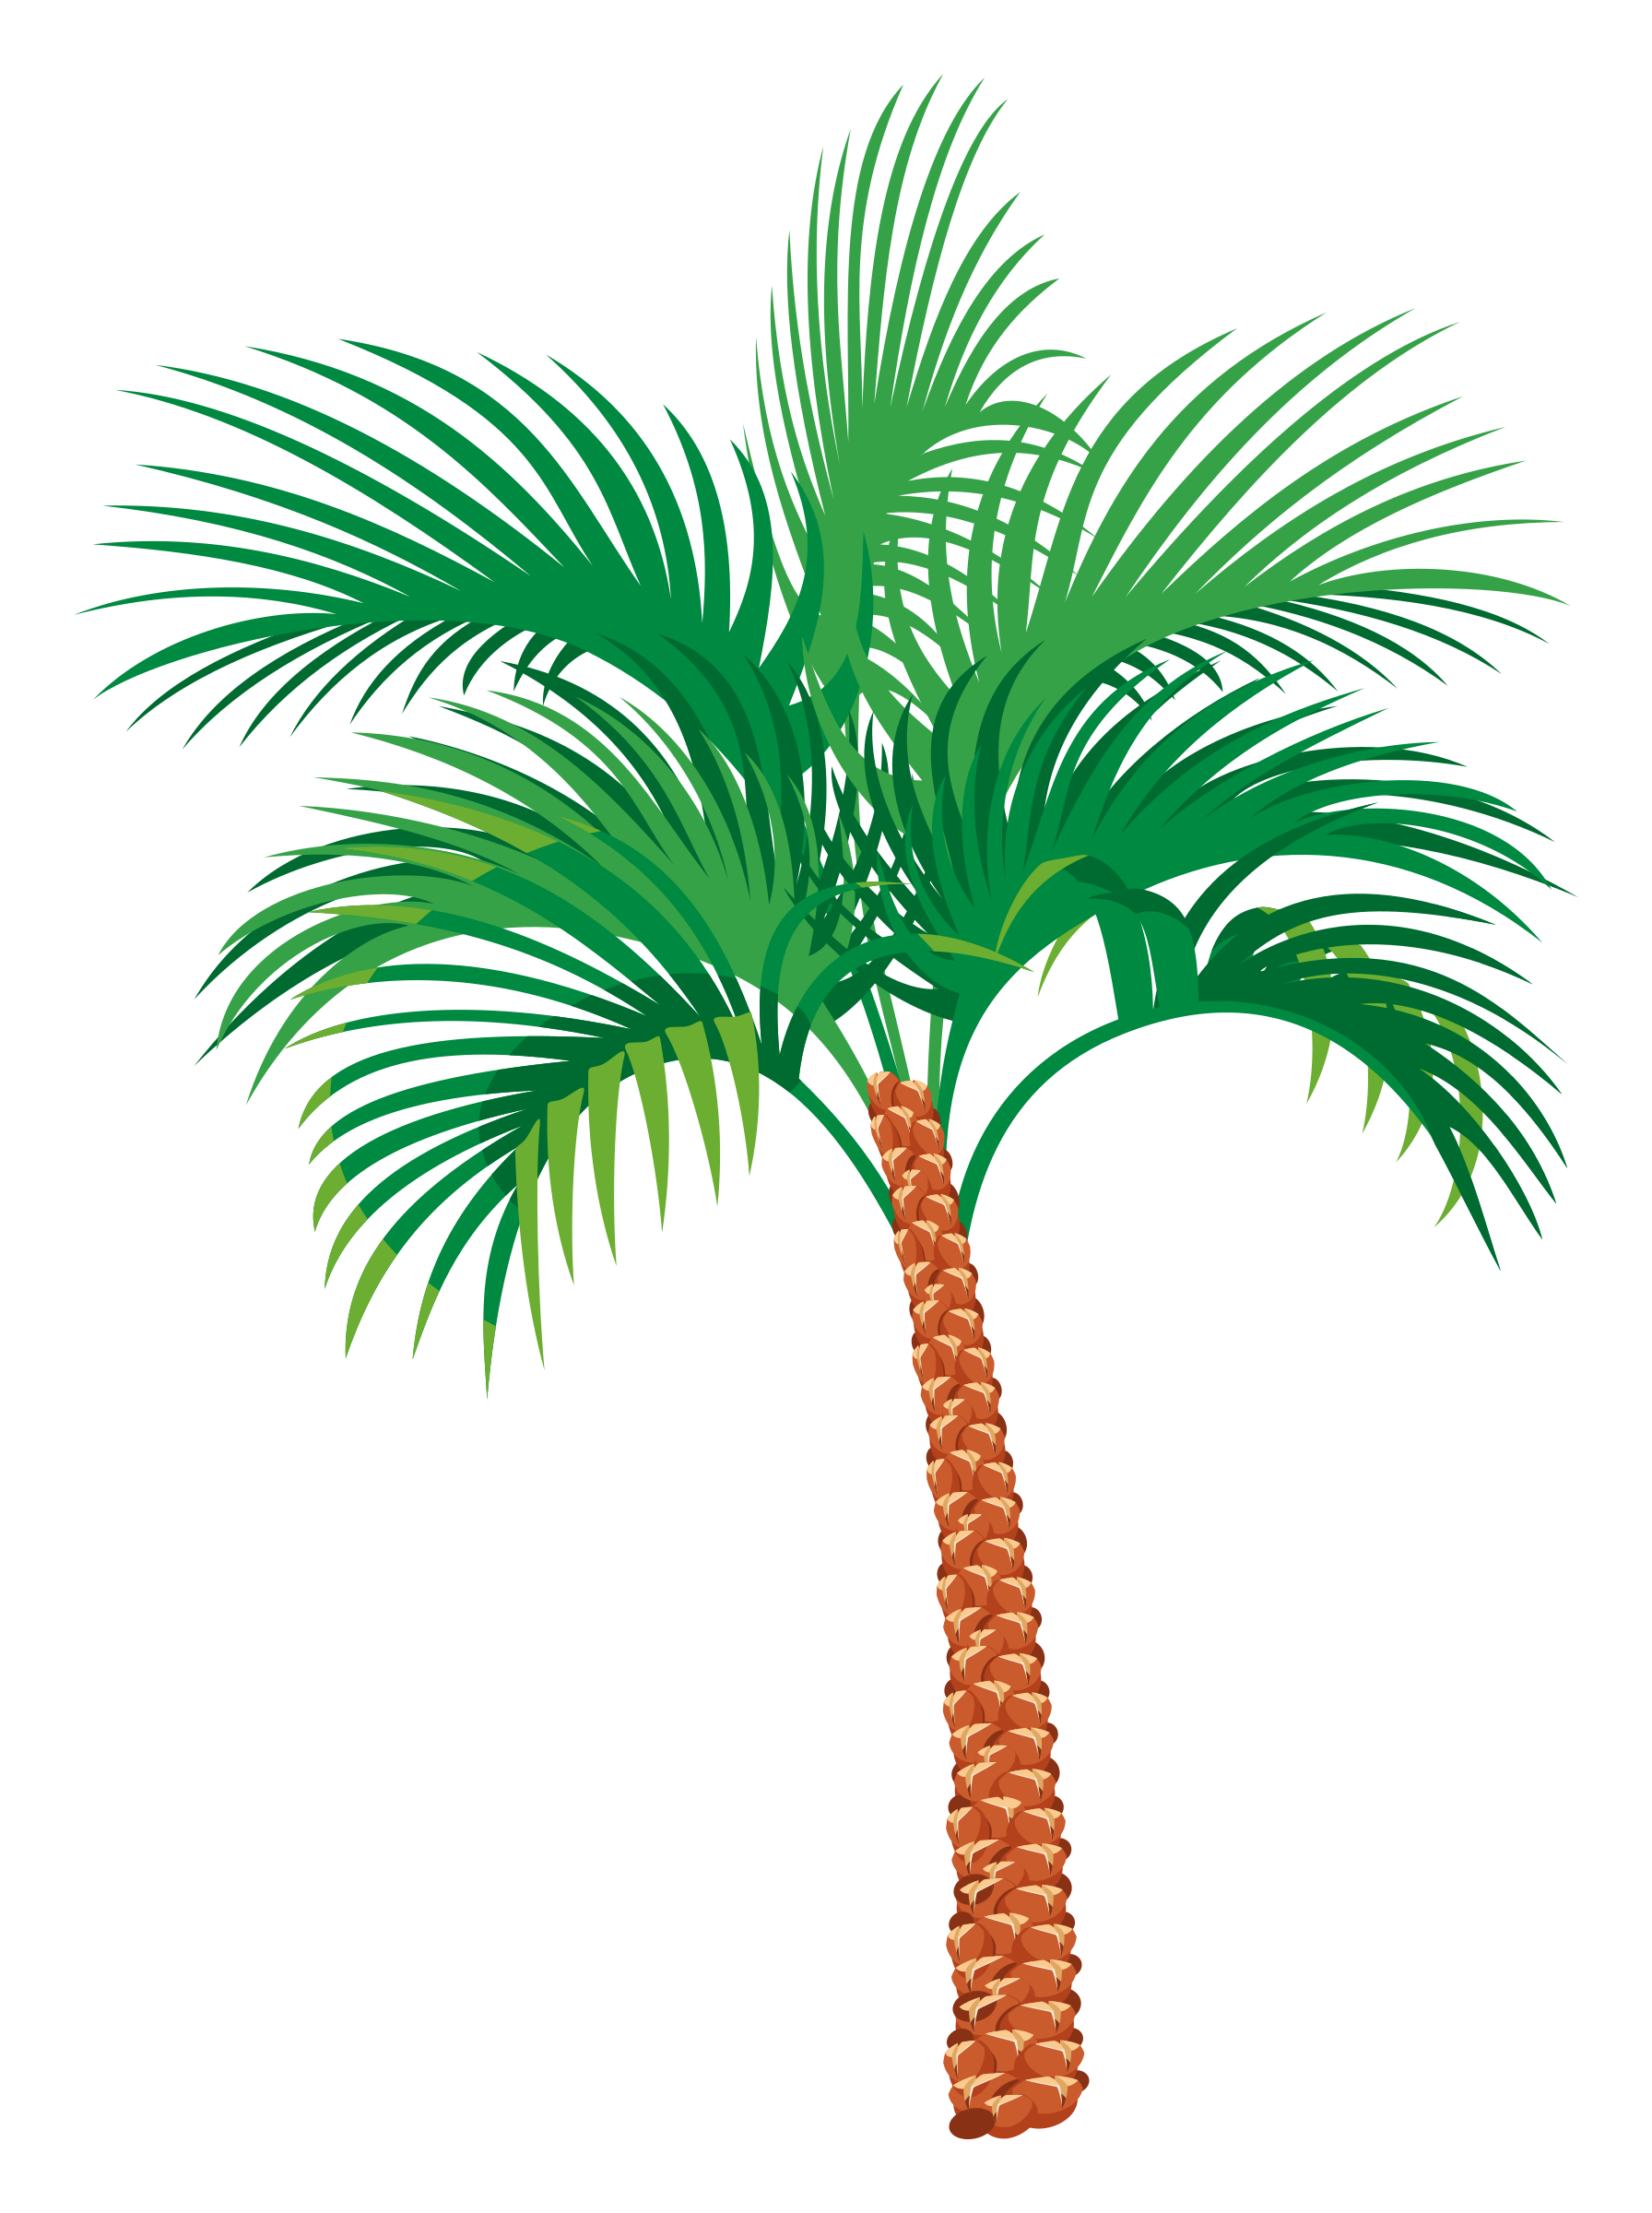 Palm tree by floEdelmann